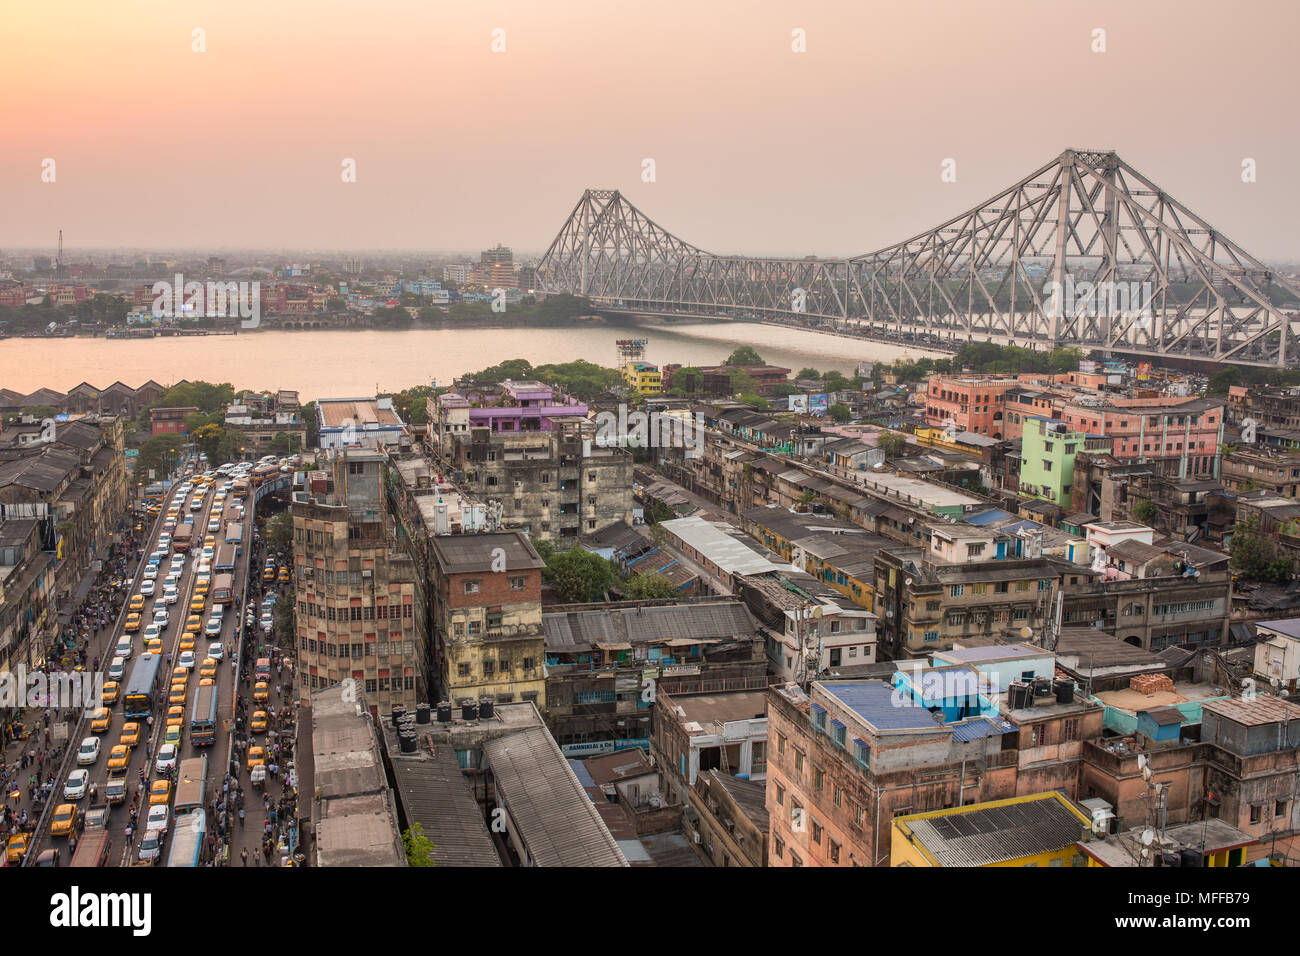 Kolkata, India - April 13, 2017: Beautiful view of Kolkata city with a Howrah bridge on the river Hooghly during sunset. Stock Photo